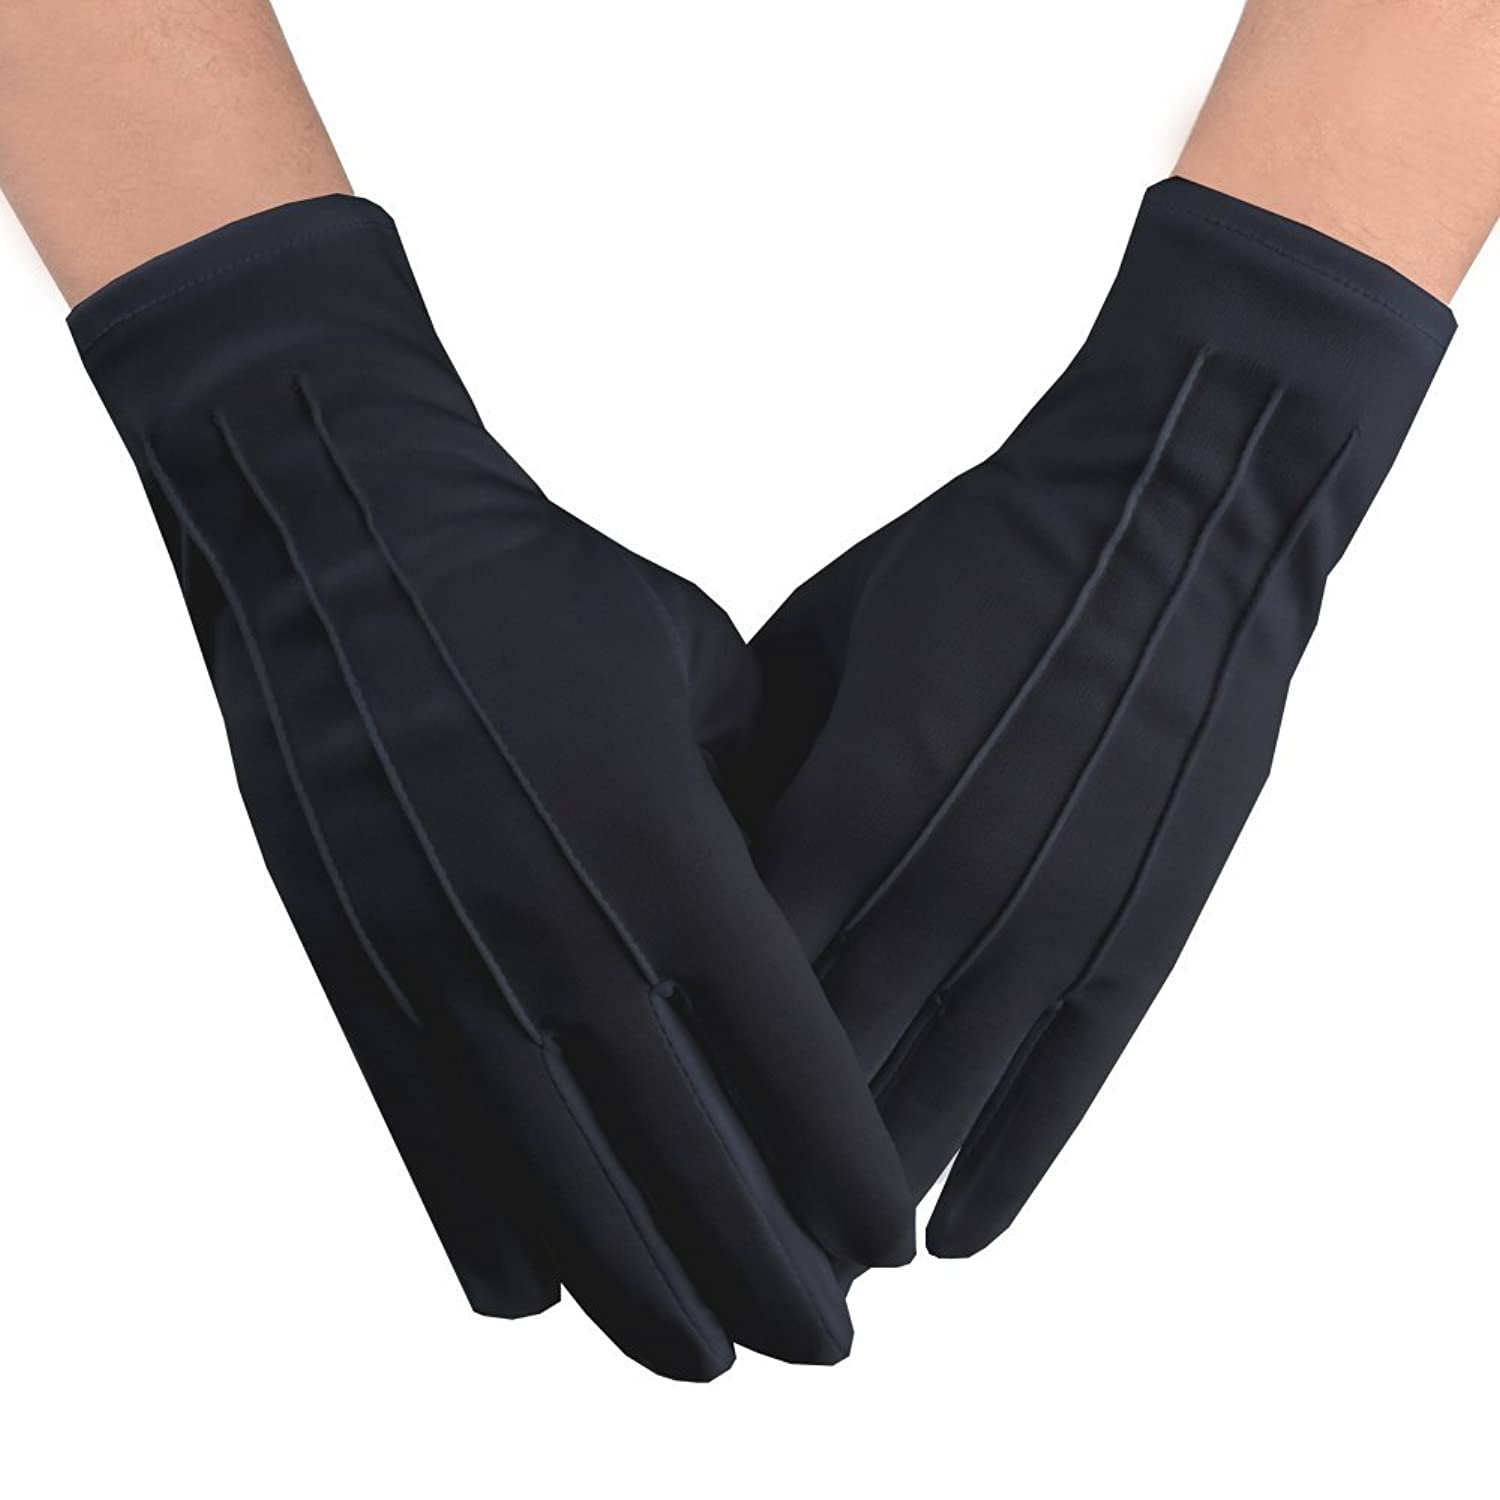 New Vintage Tuxedos, Tailcoats, Morning Suits, Dinner Jackets Men Black Cotton Gloves  AT vintagedancer.com